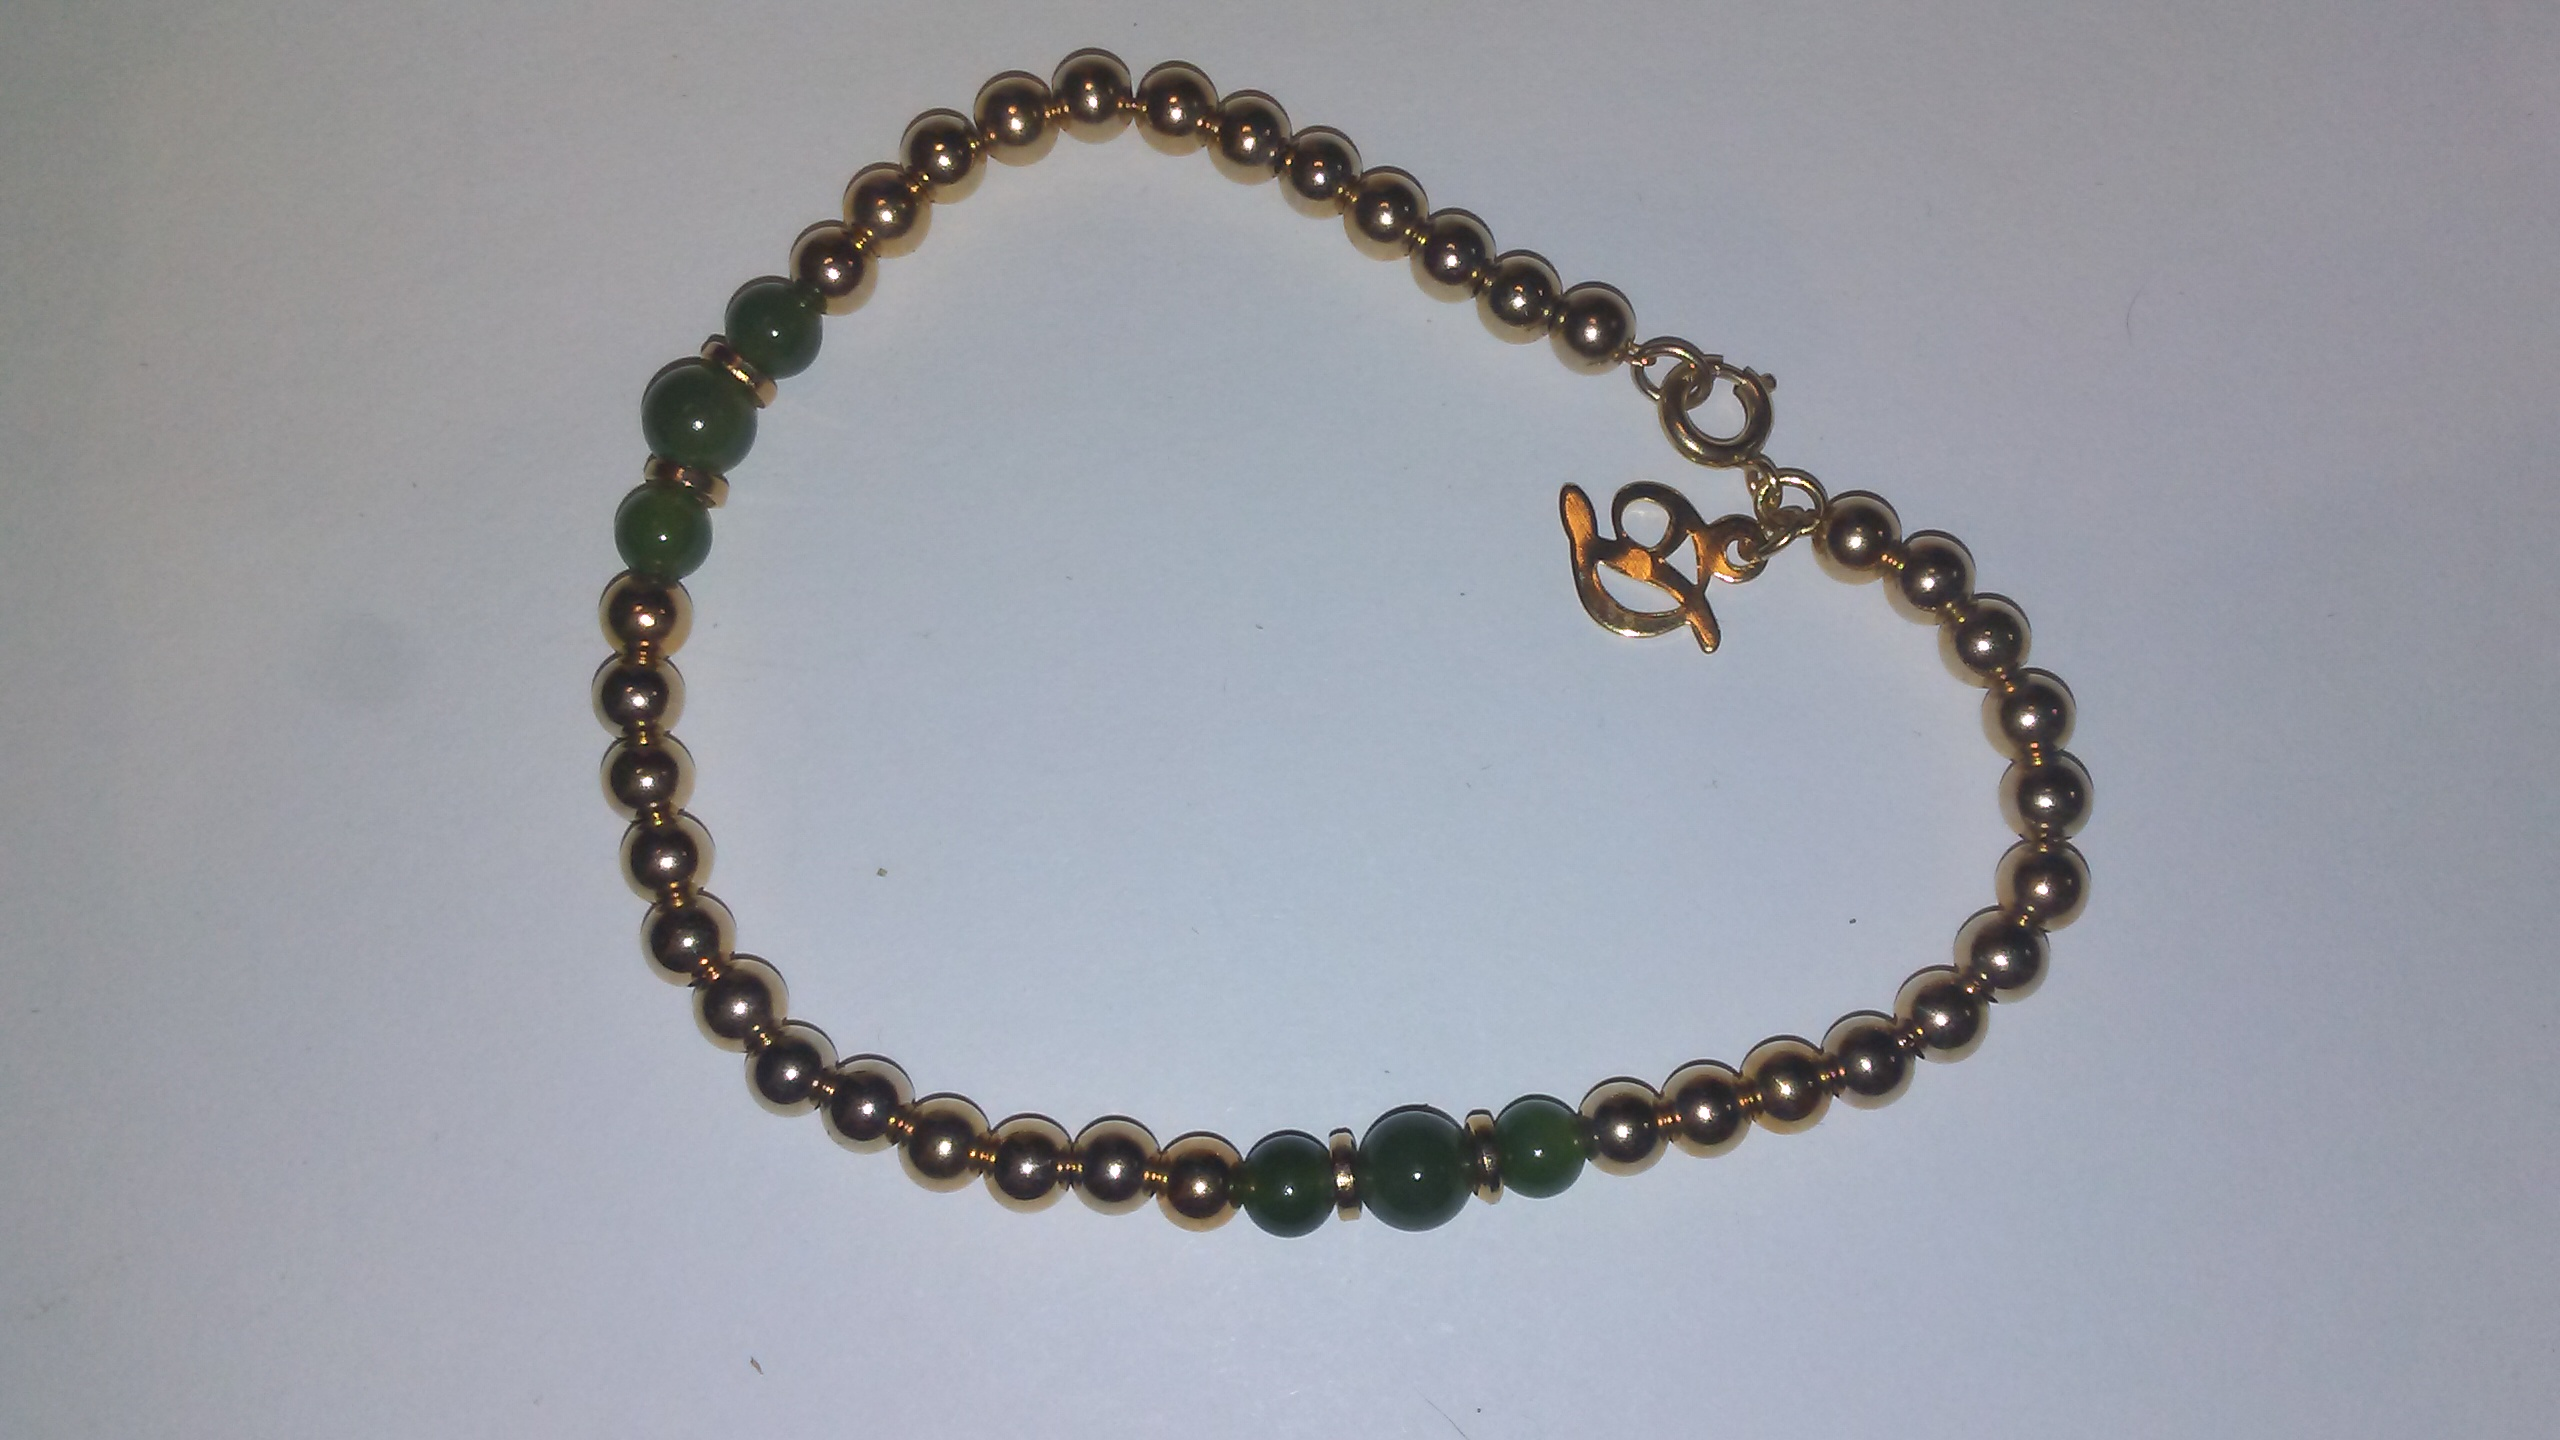 Gold+Filled+Beads+and+Genuine+Green+Jade+Bracelet+